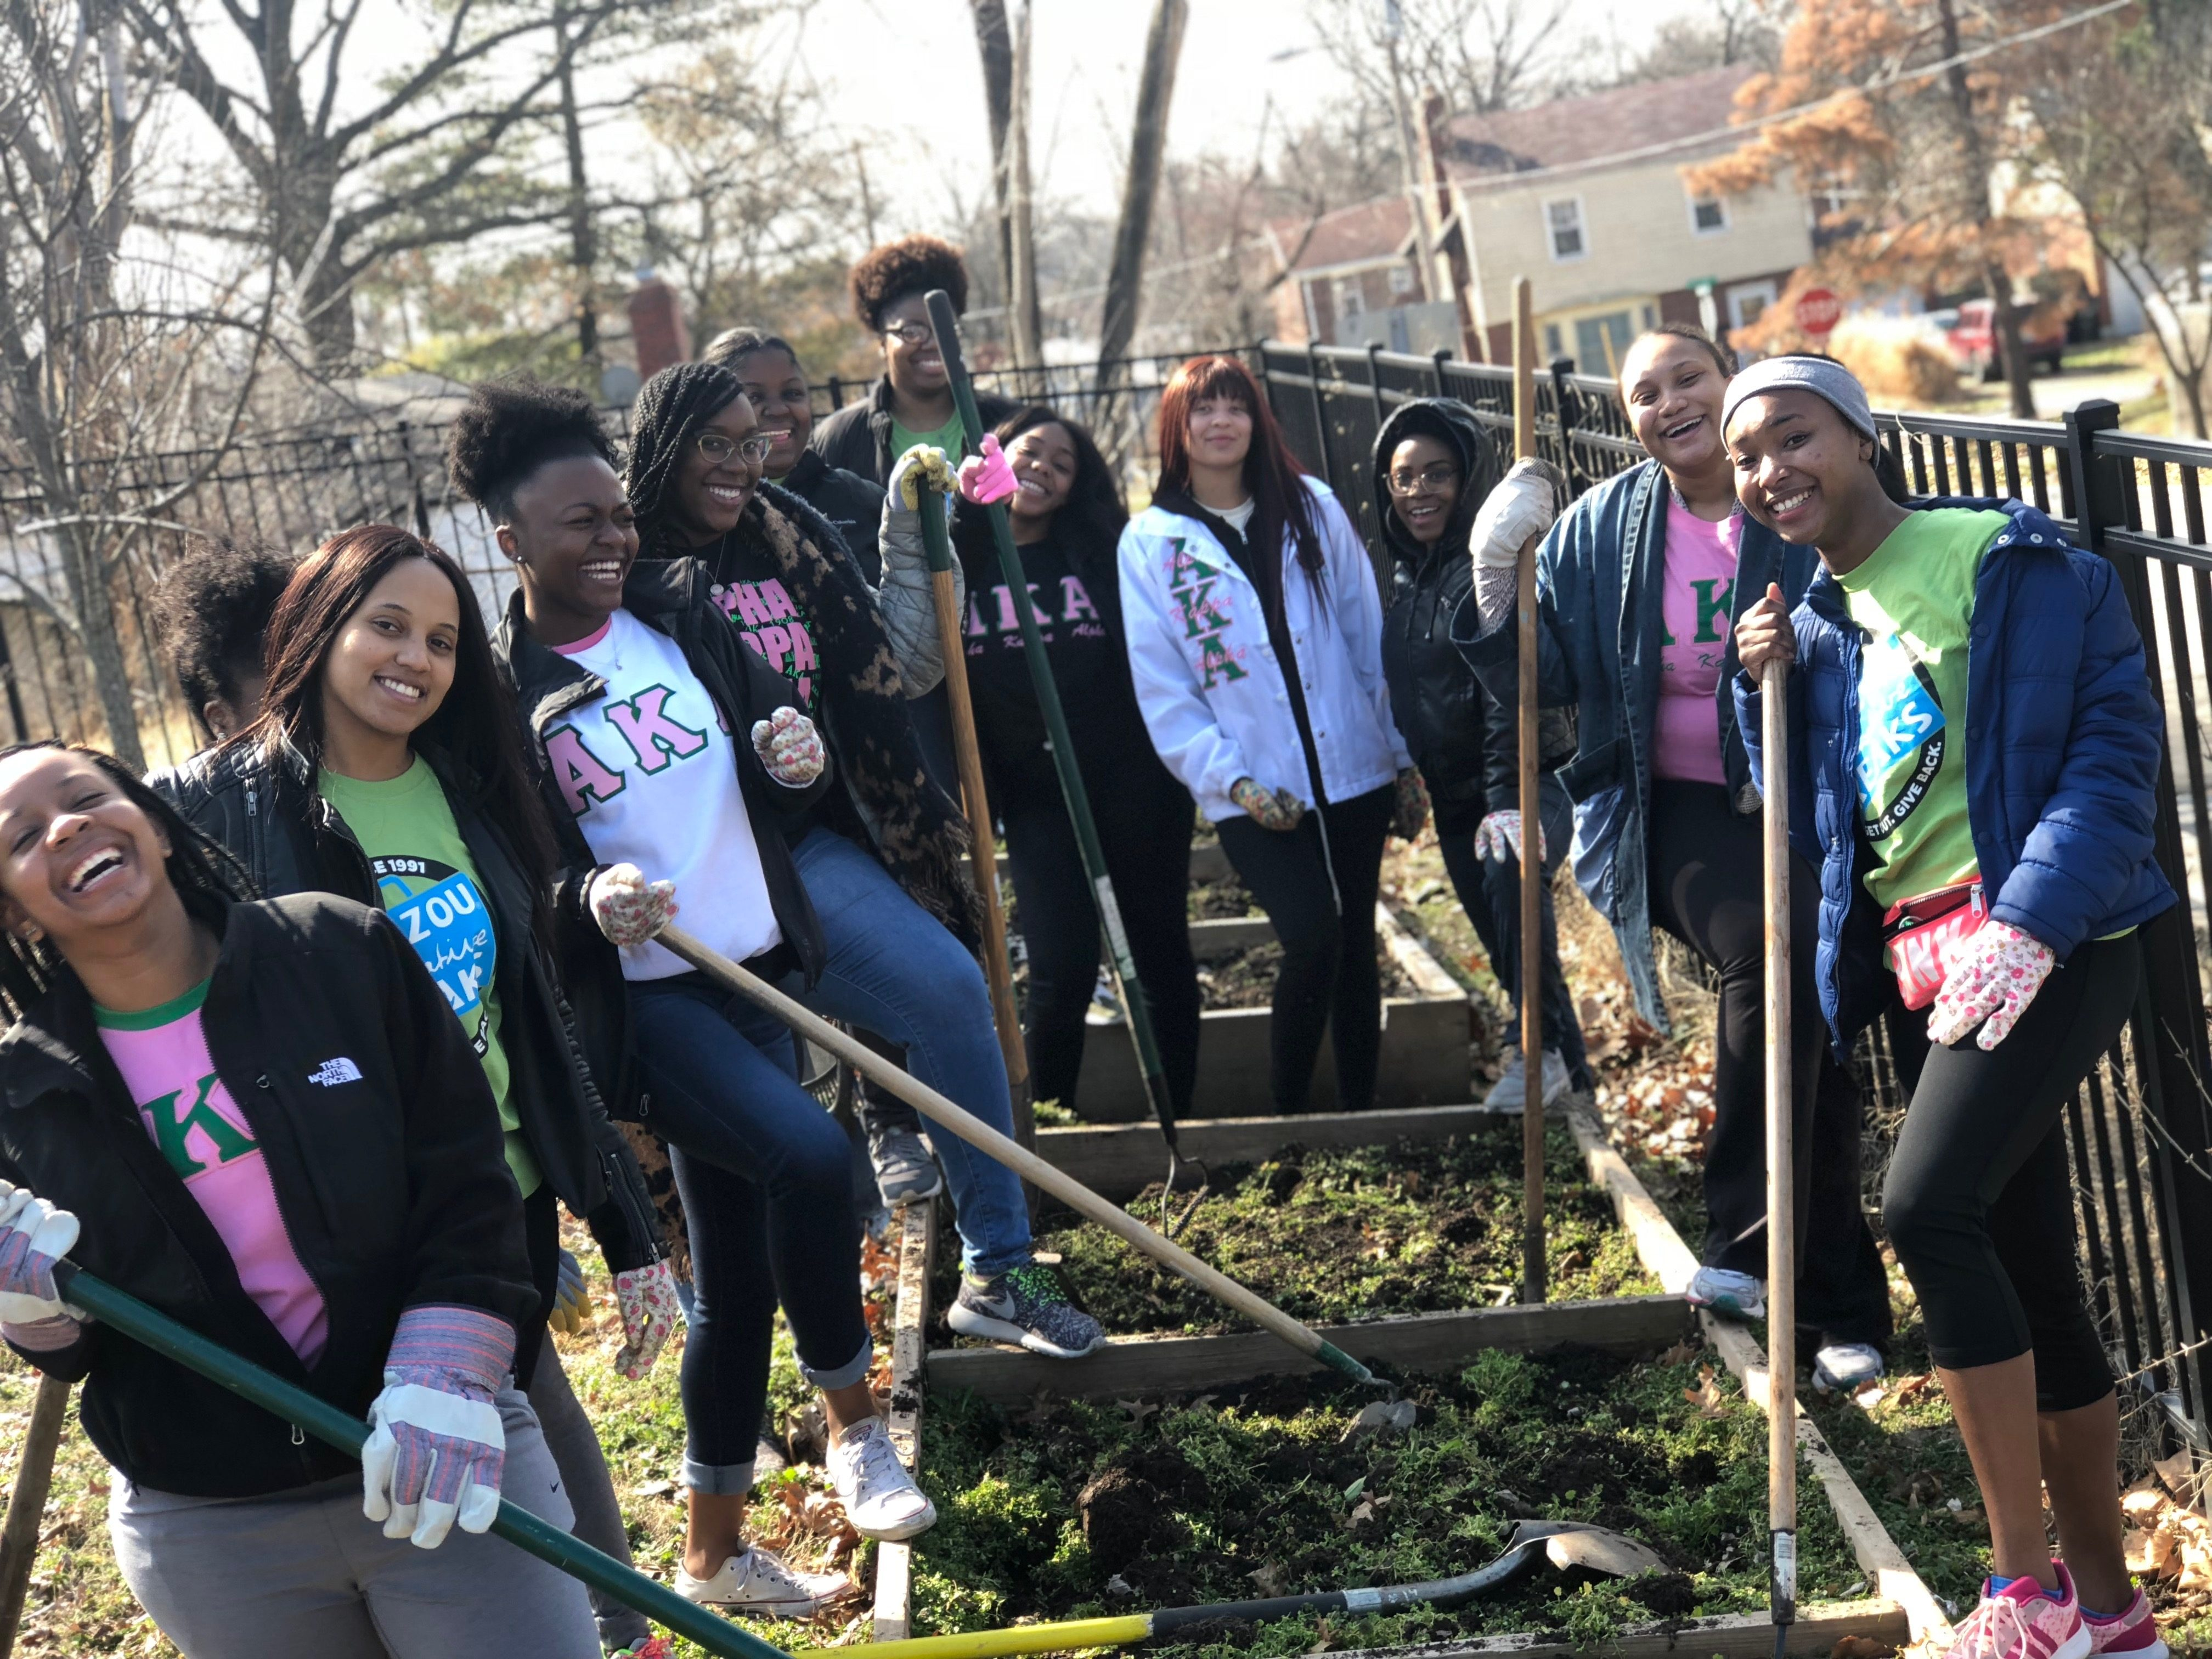 Alpha Kappa Alpha making the St. Louis community prettier, one neighborhood at a time.